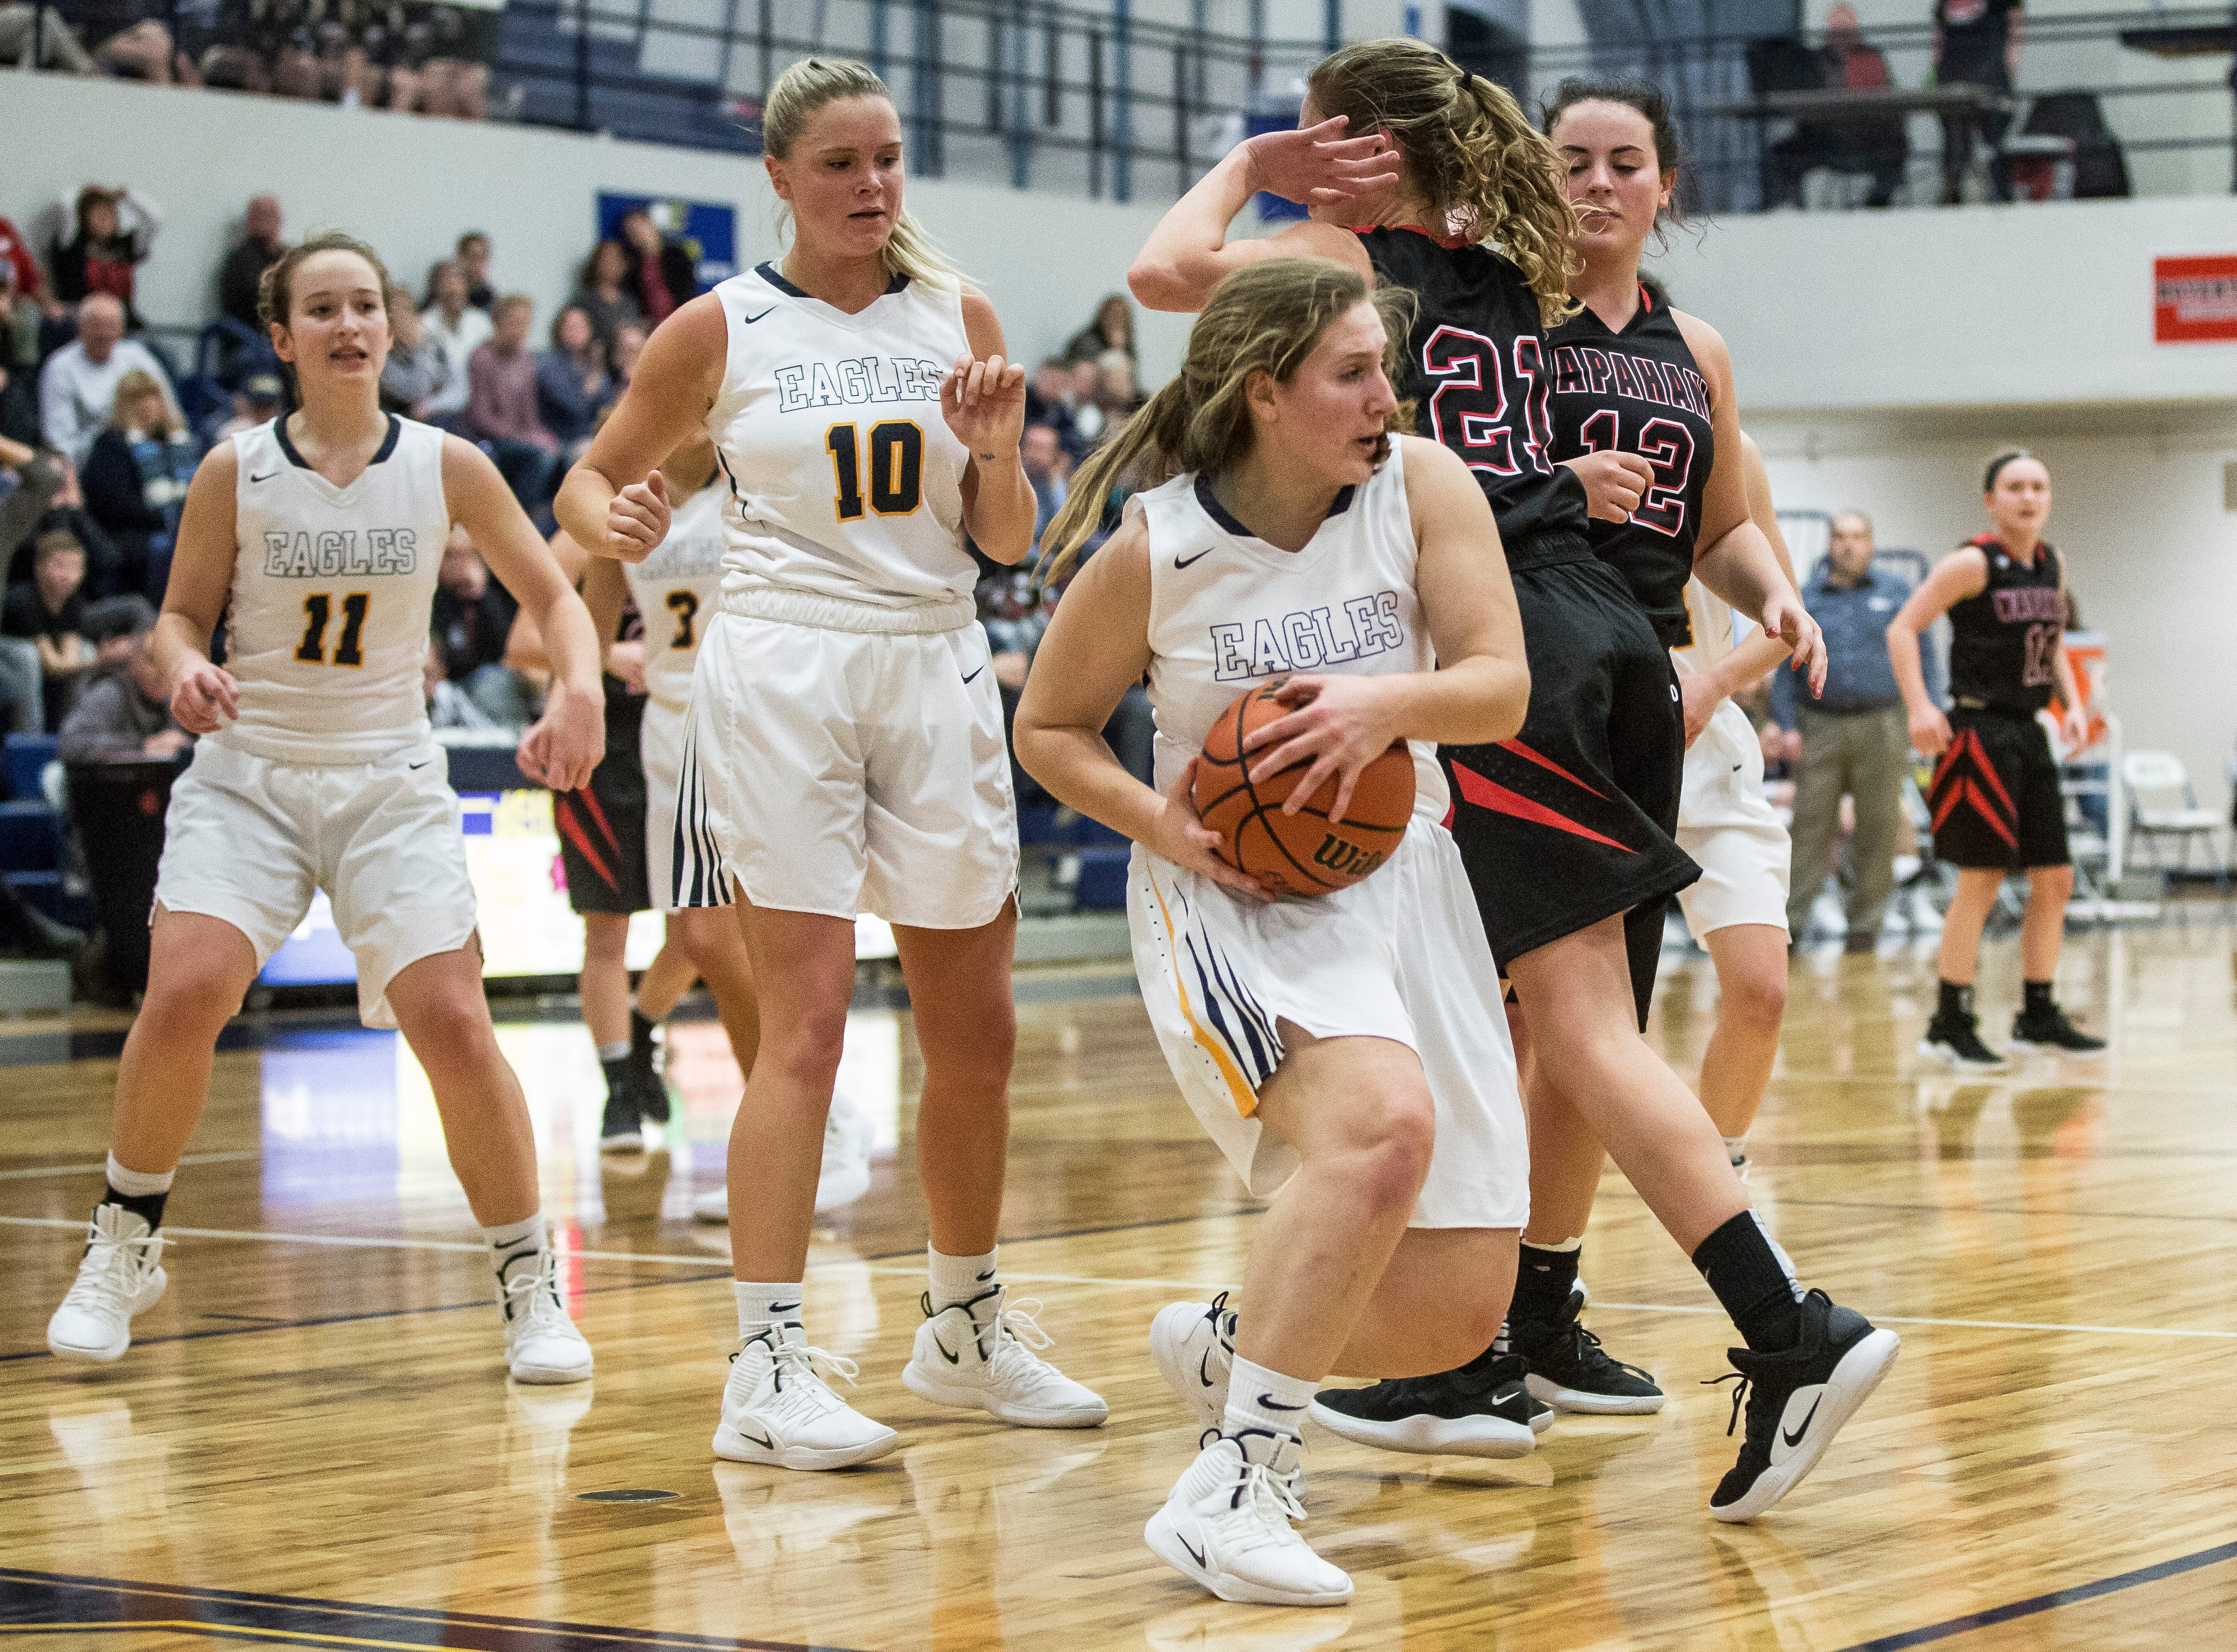 Delta's girls team takes on Wapahni for the Delaware County Basketball Tournament Championship Monday evening. Delta won the title with a final score of 42-32.